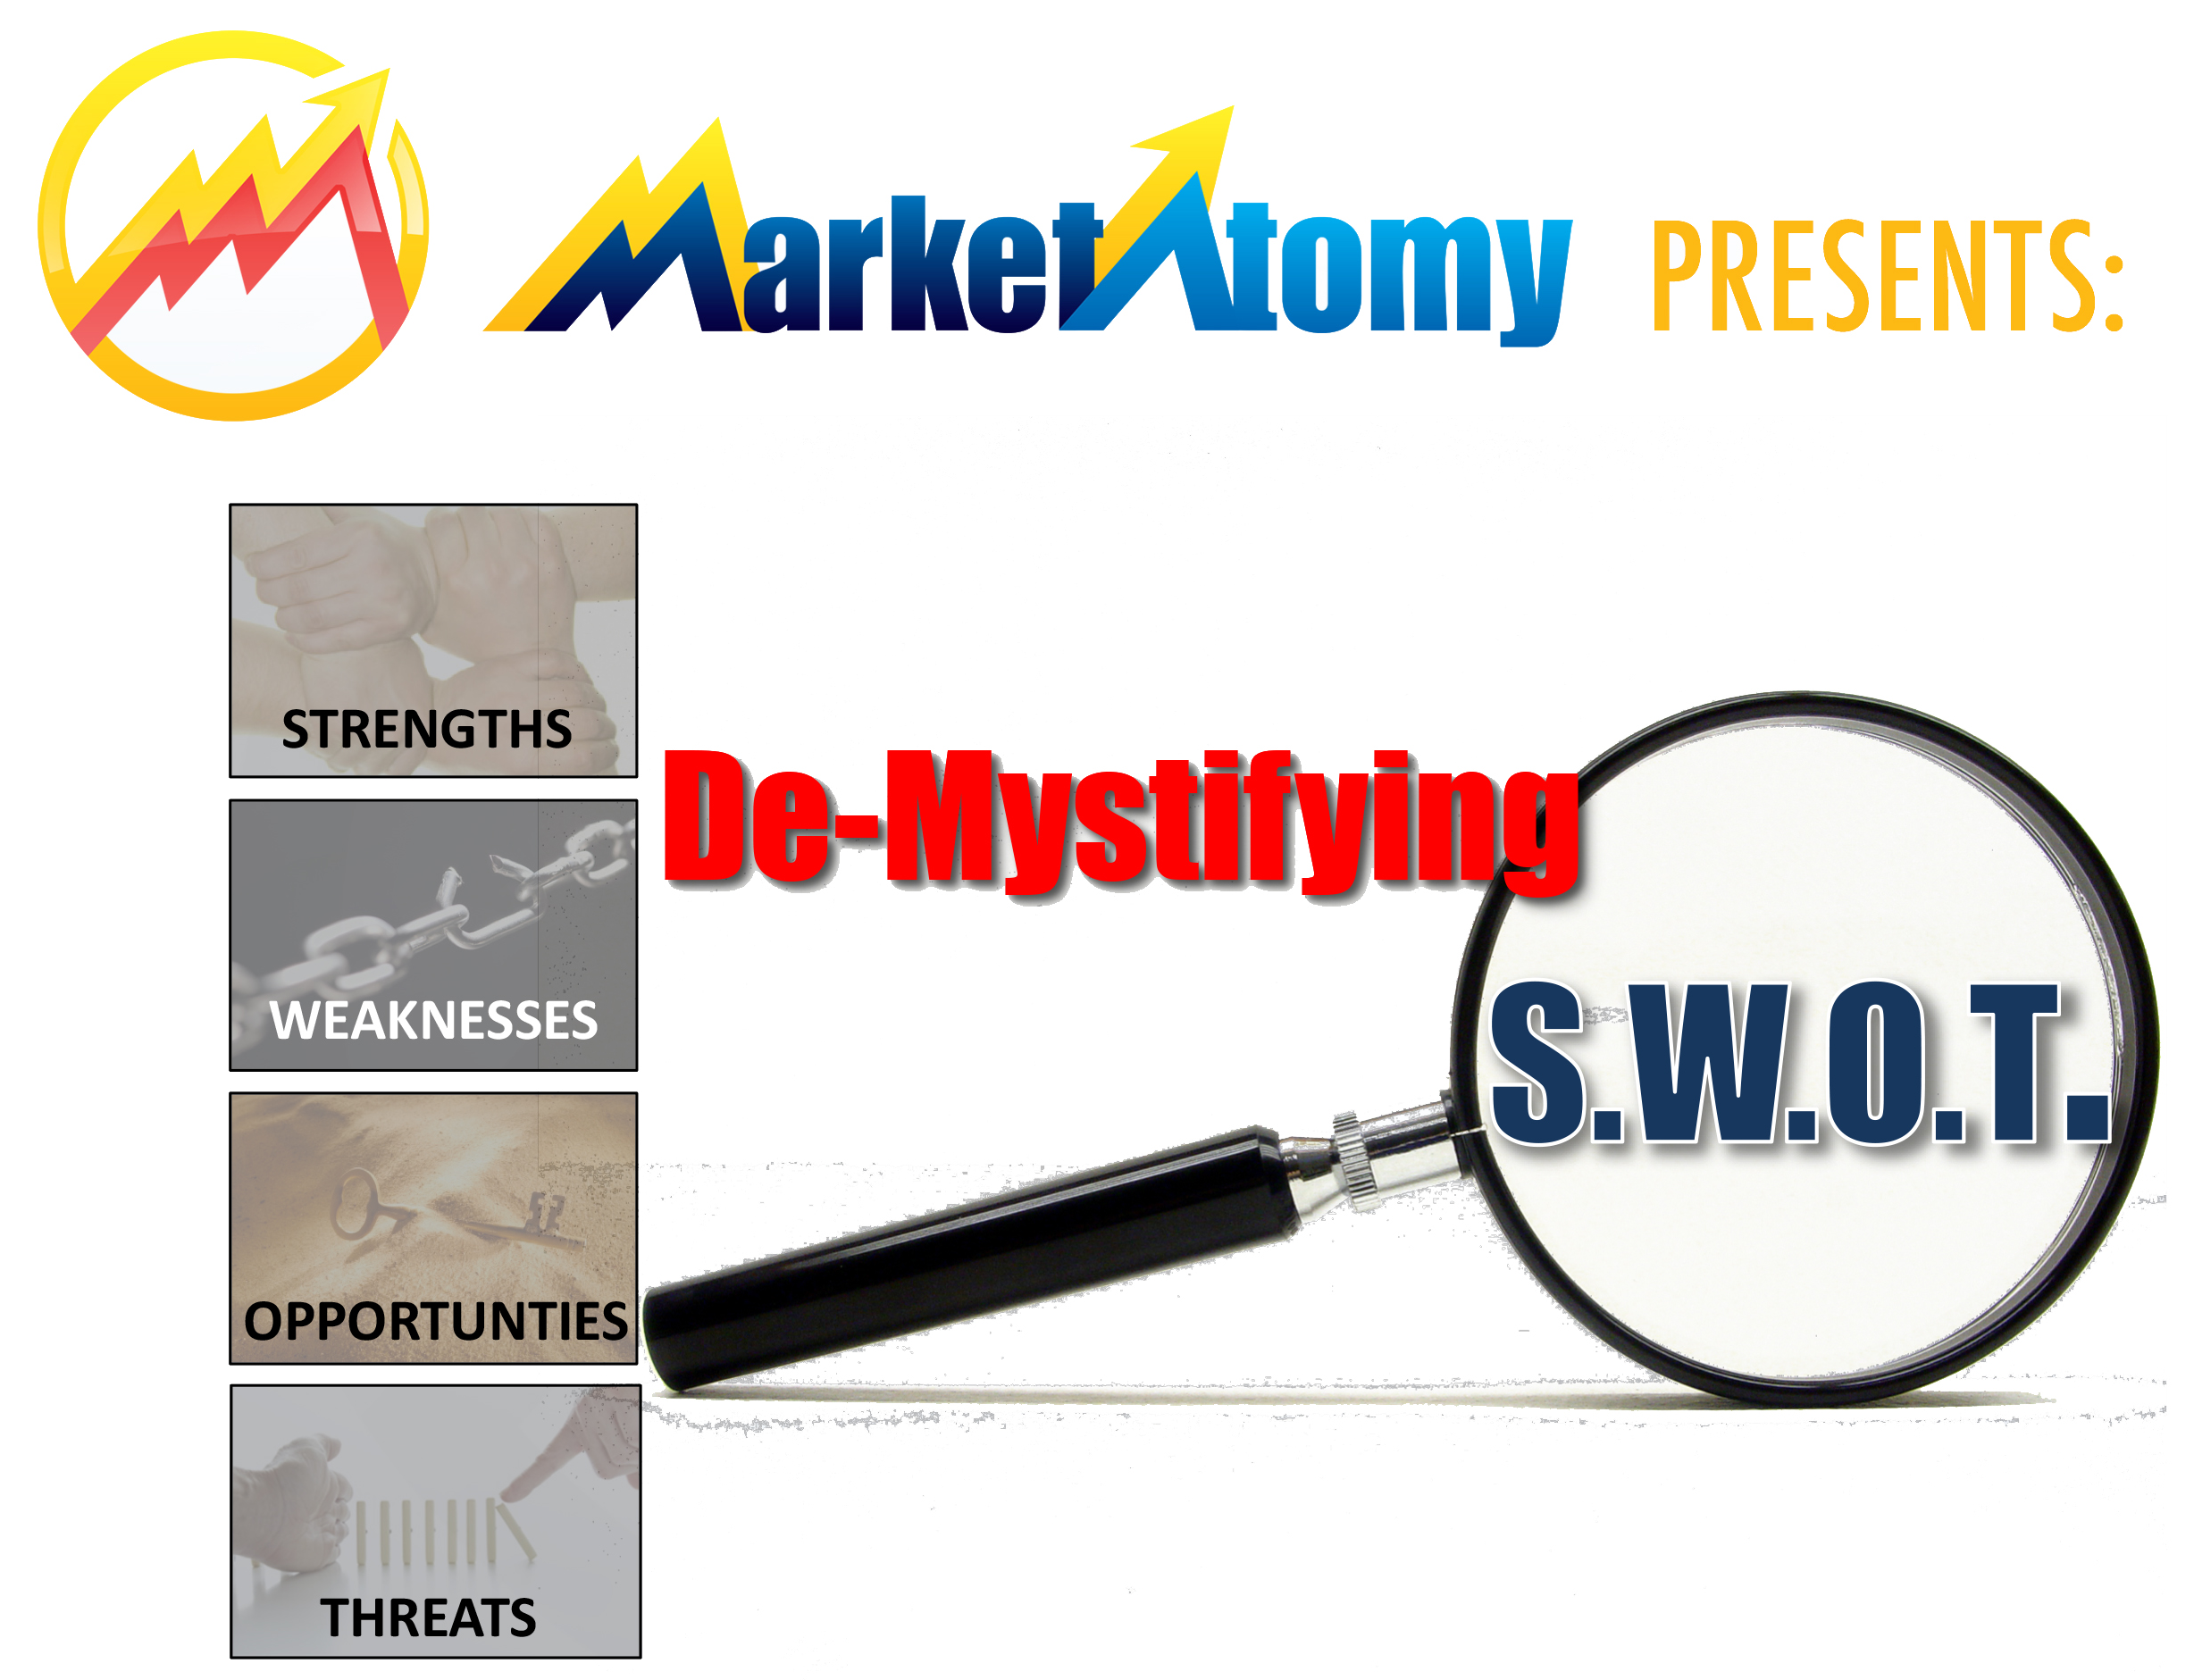 Thumbnail forDeMystifying the SWOT on ViewStub